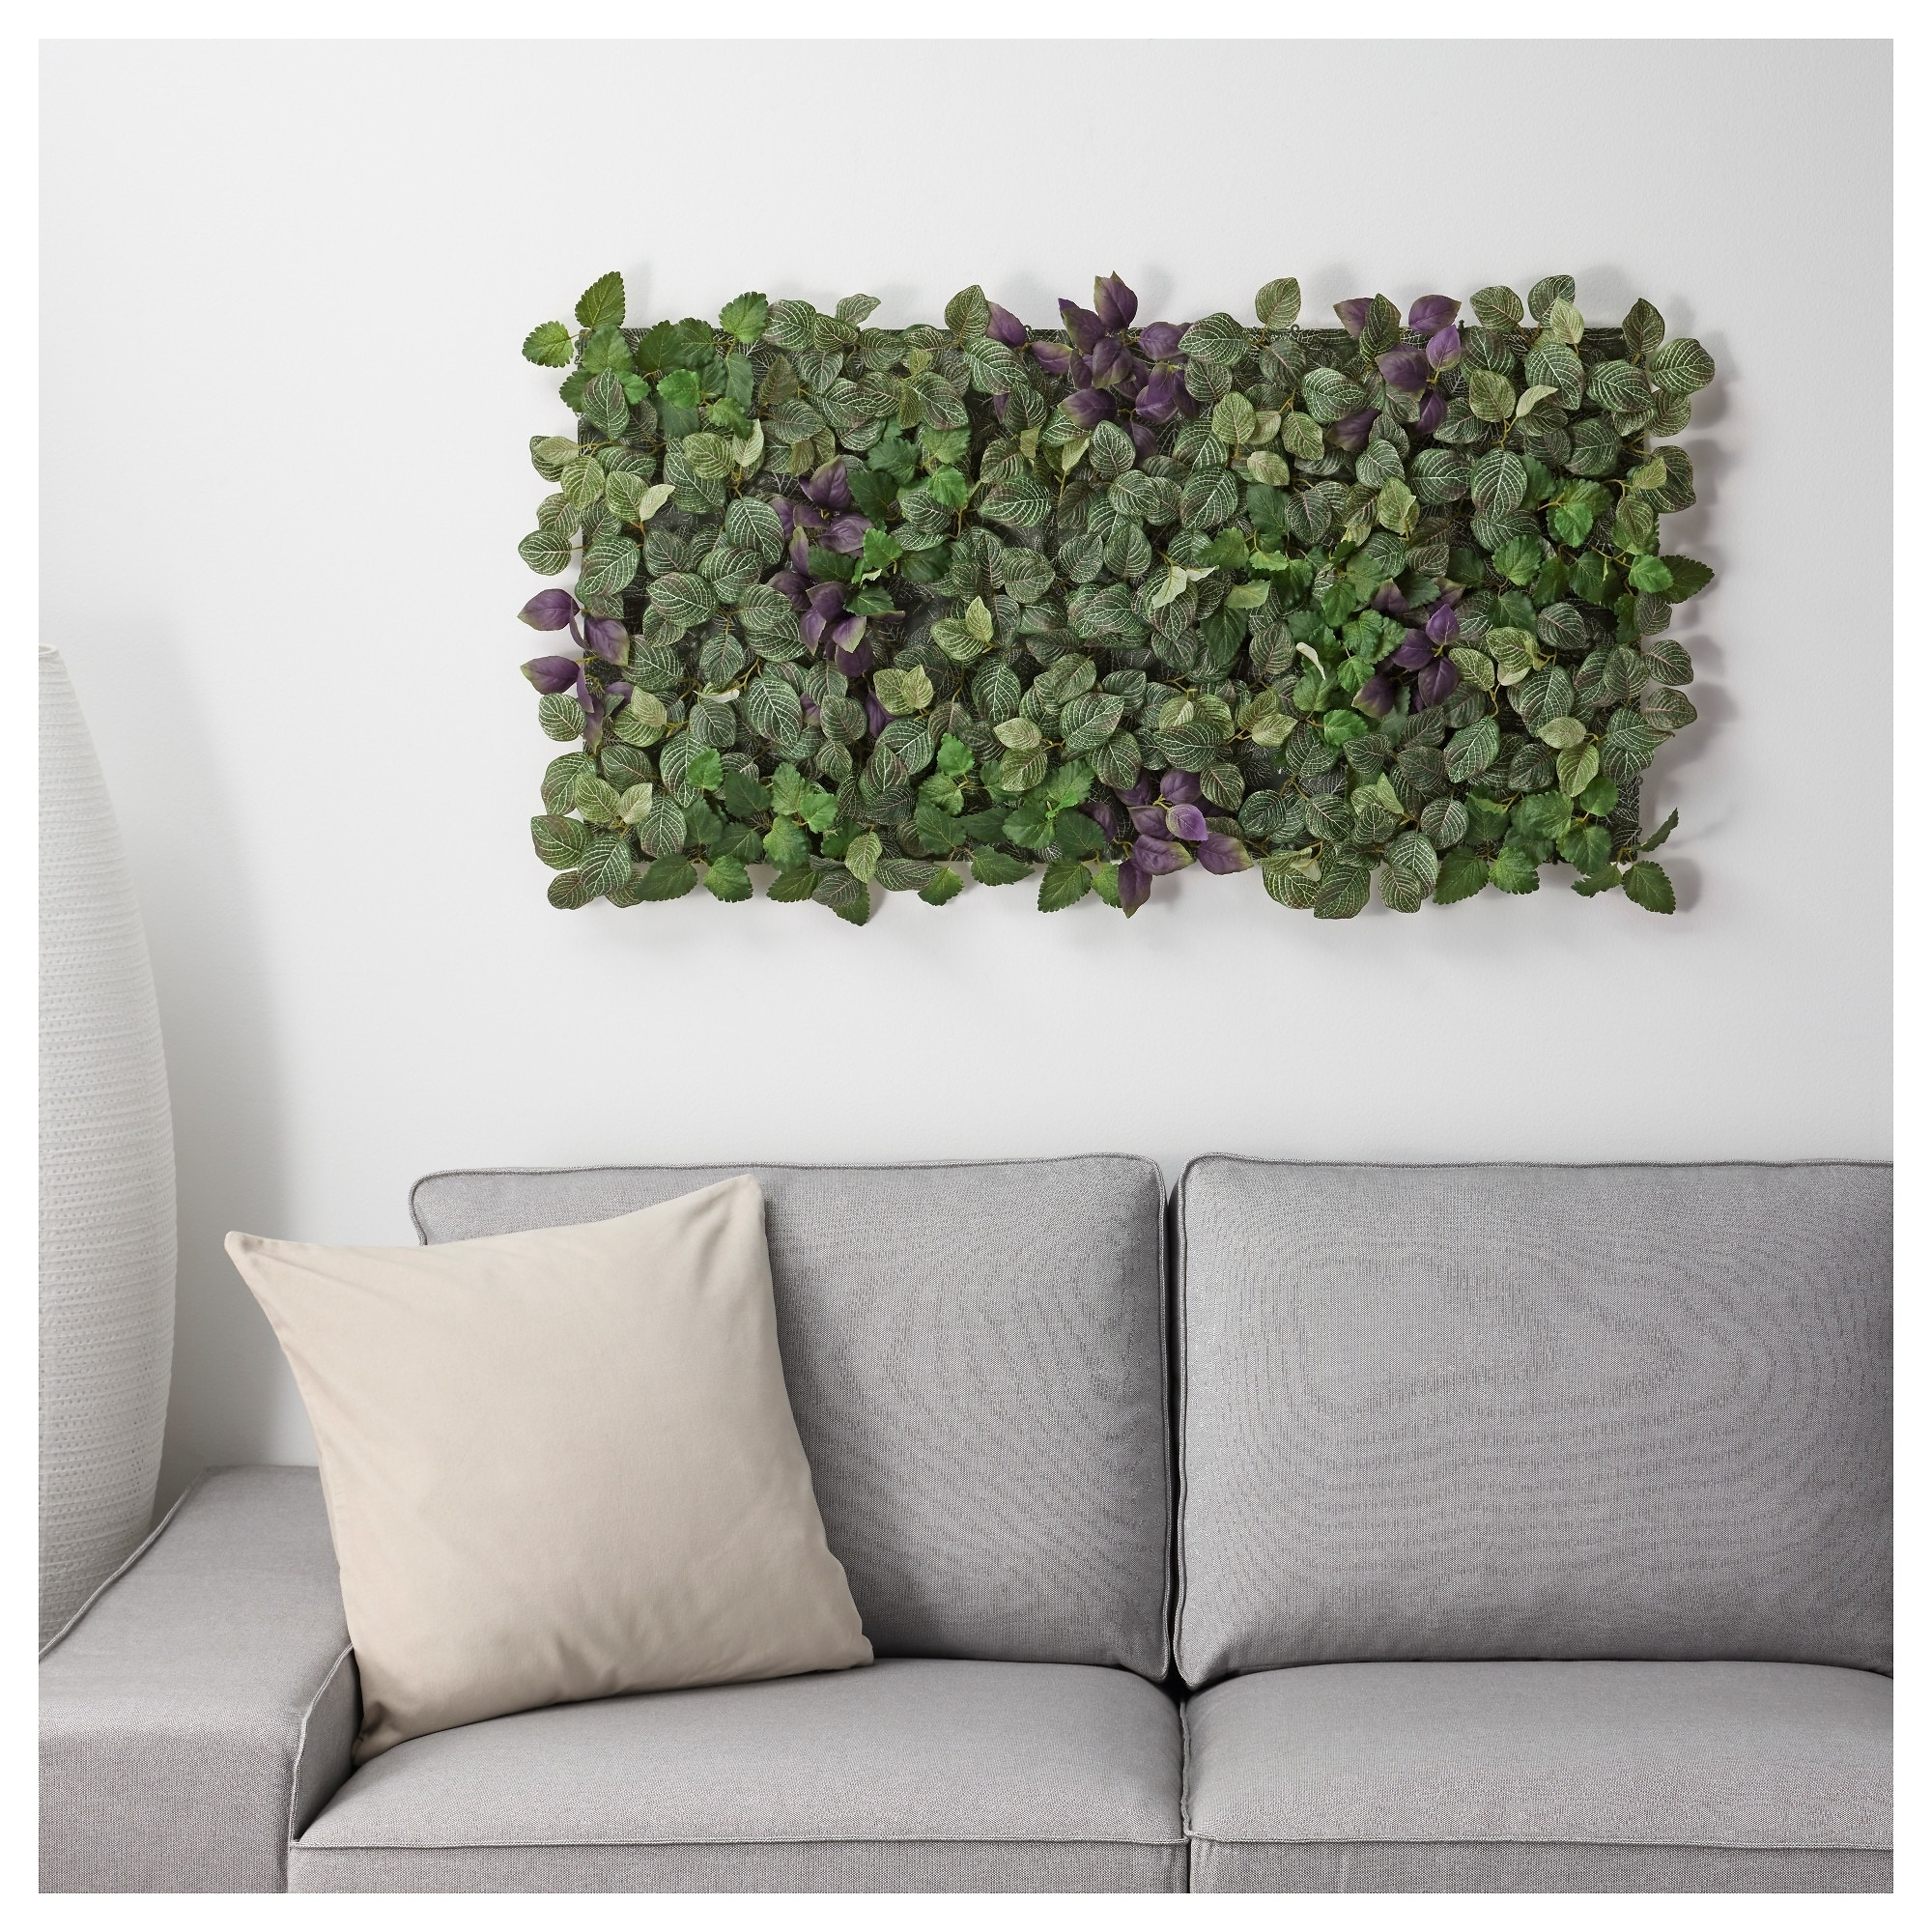 Fejka Artificial Plant Wall Mounted/in/outdoor Green/lilac 26 X 26 pertaining to Ikea Wall Art (Image 6 of 20)